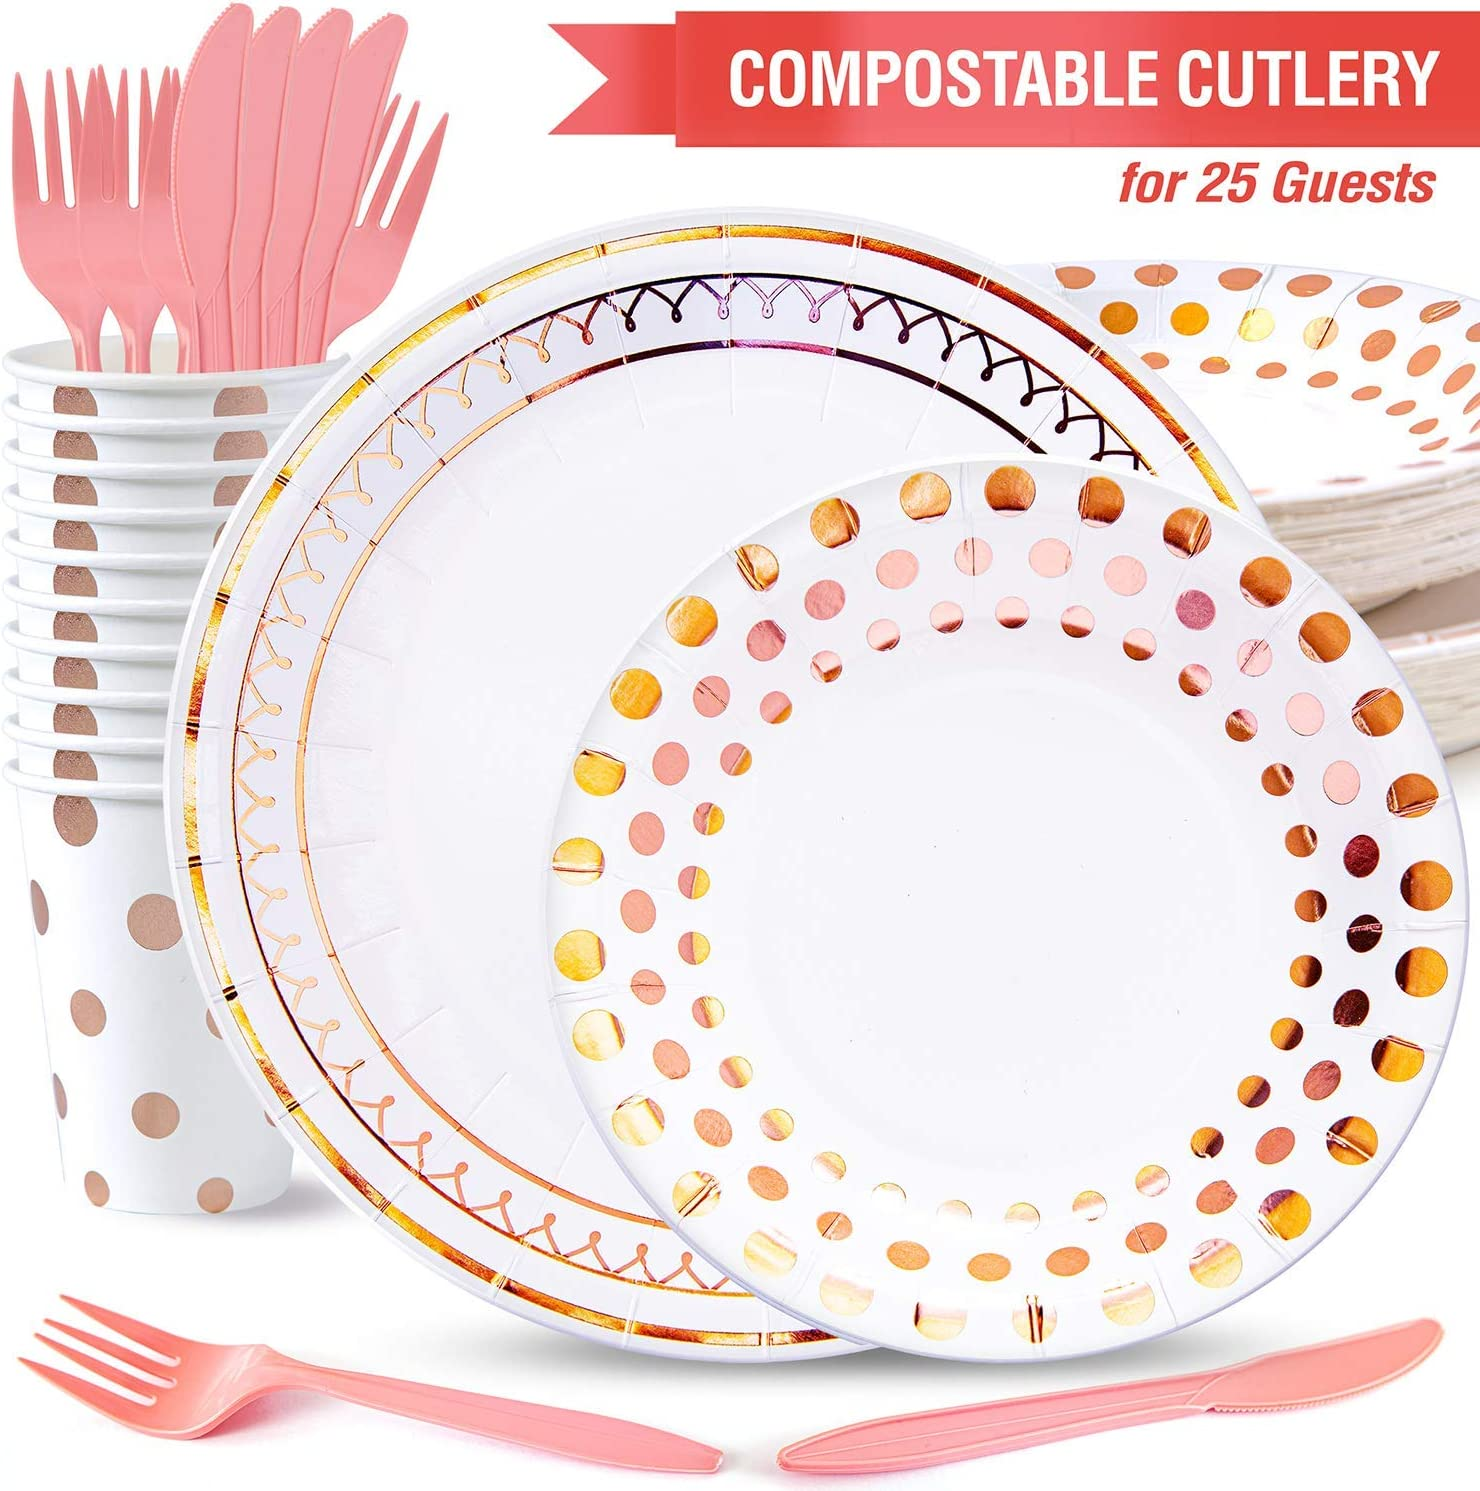 Baby Shower Rose Gold Party Decorations Sweet 16 Party Supplies Pink and Gold Party Supplies Kiki Green Rose Gold Paper Plates Set 125pcs Compostable Paper Plates Rose Gold Party Plates and Cups